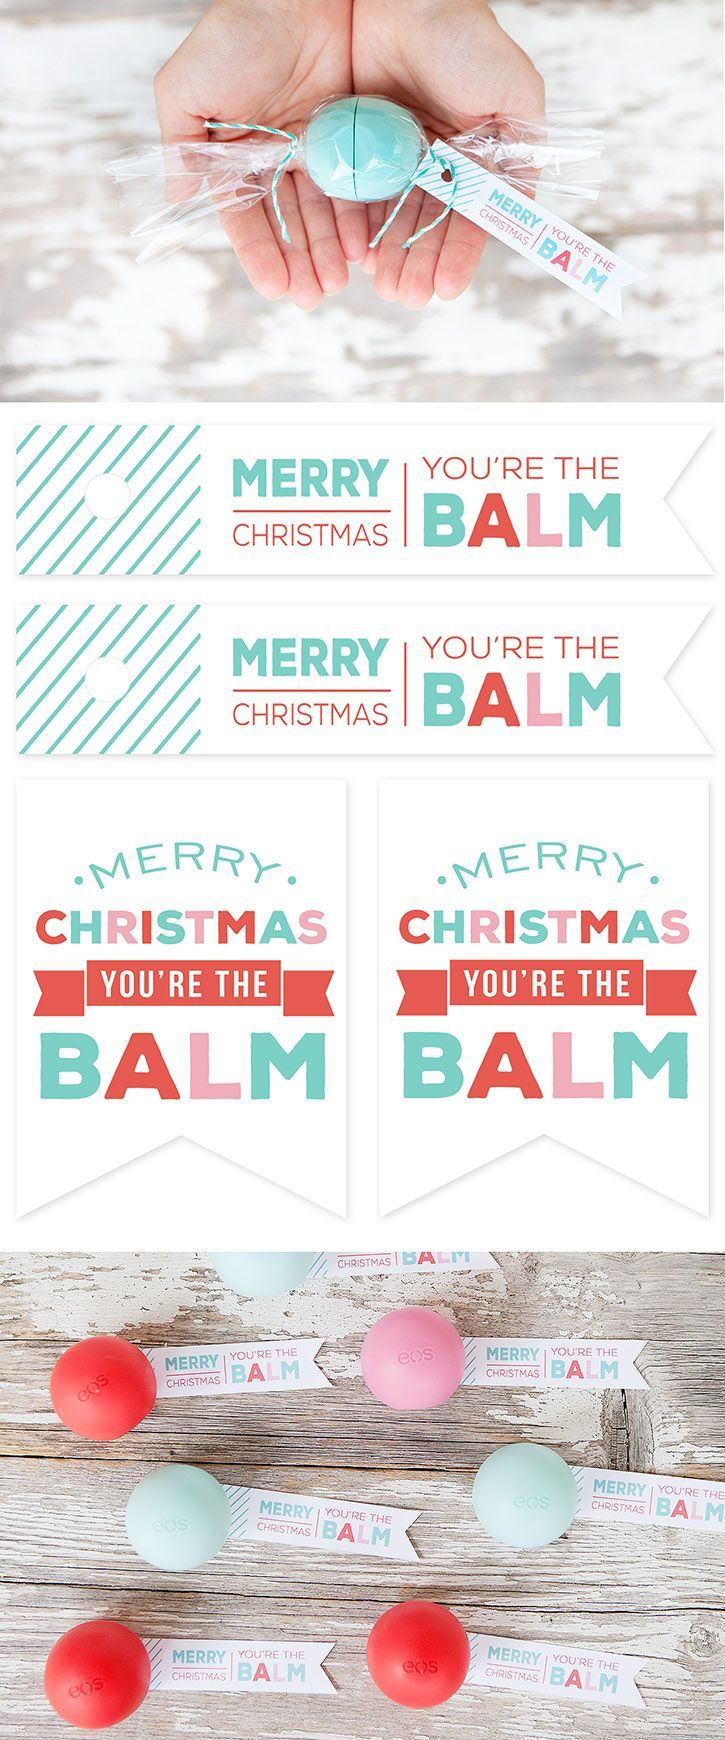 """EOS Lip Balm """"Candies"""" and FREE Printable Gift Tags. Simple and inexpensive Christmas gift idea for friends, tweens, teachers."""